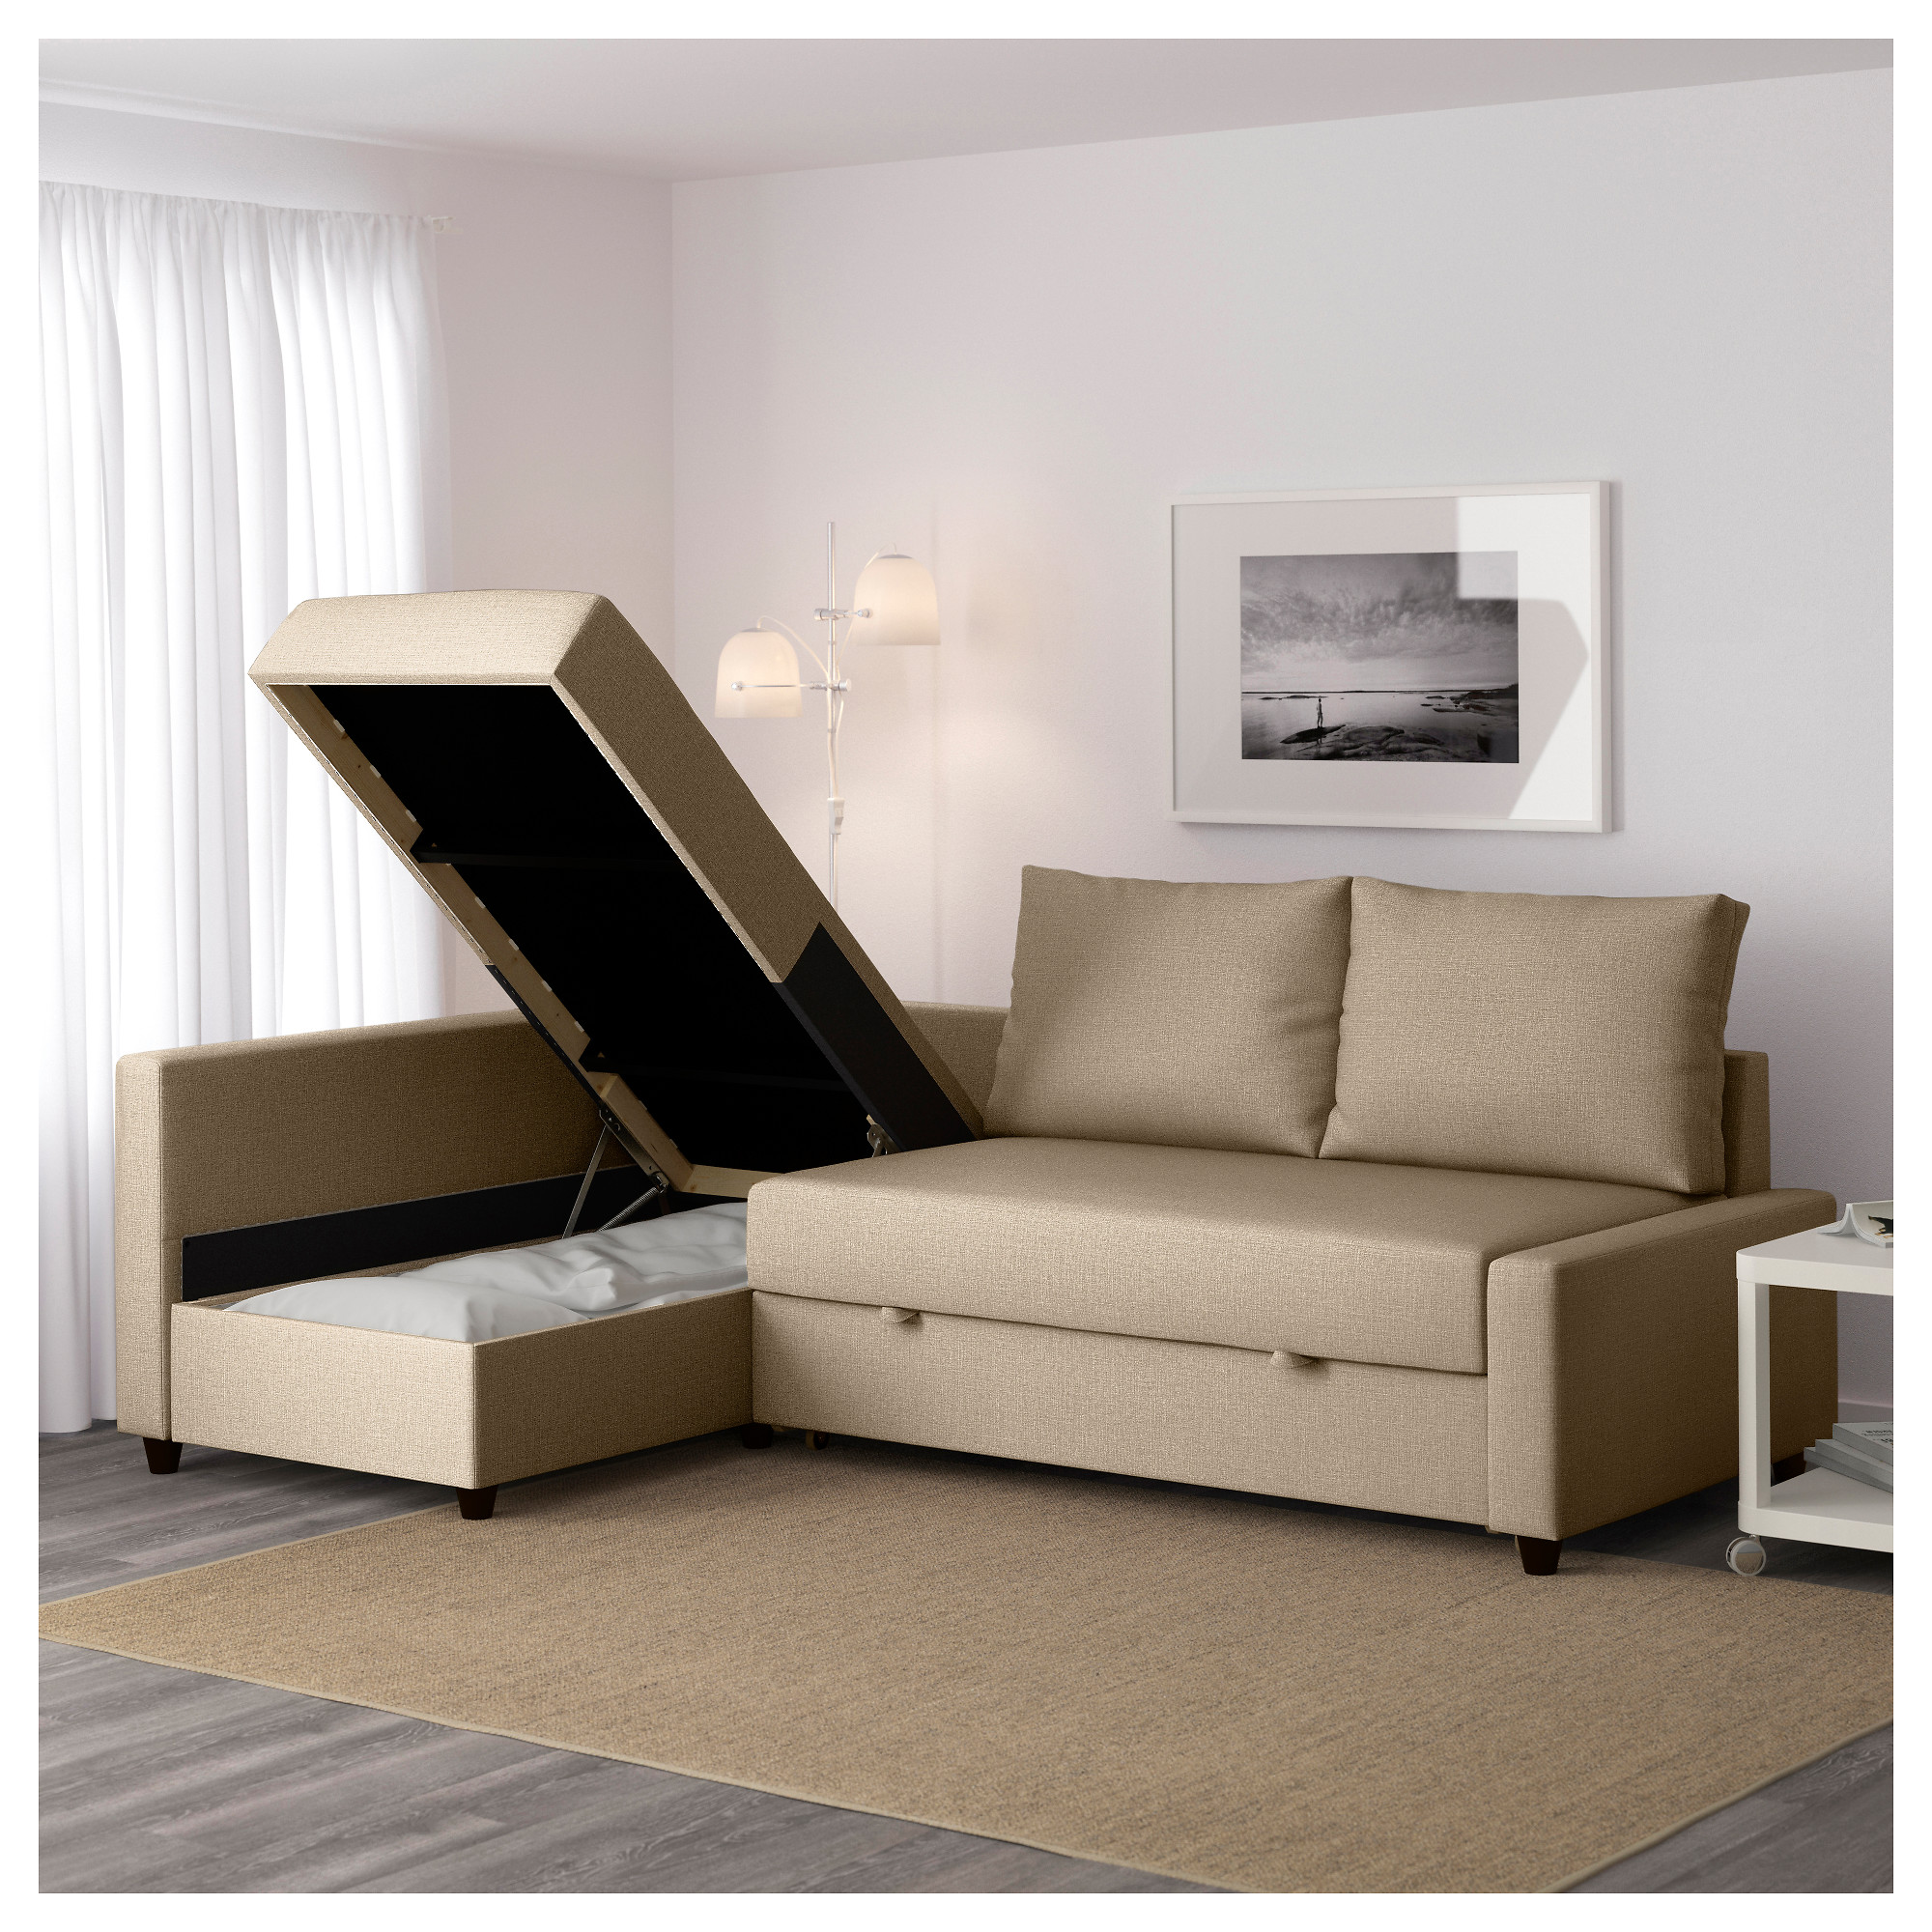 Klassische Sofas You Can Assemble Friheten Corner Sofa Bed With Storage Skiftebo Dark Gray